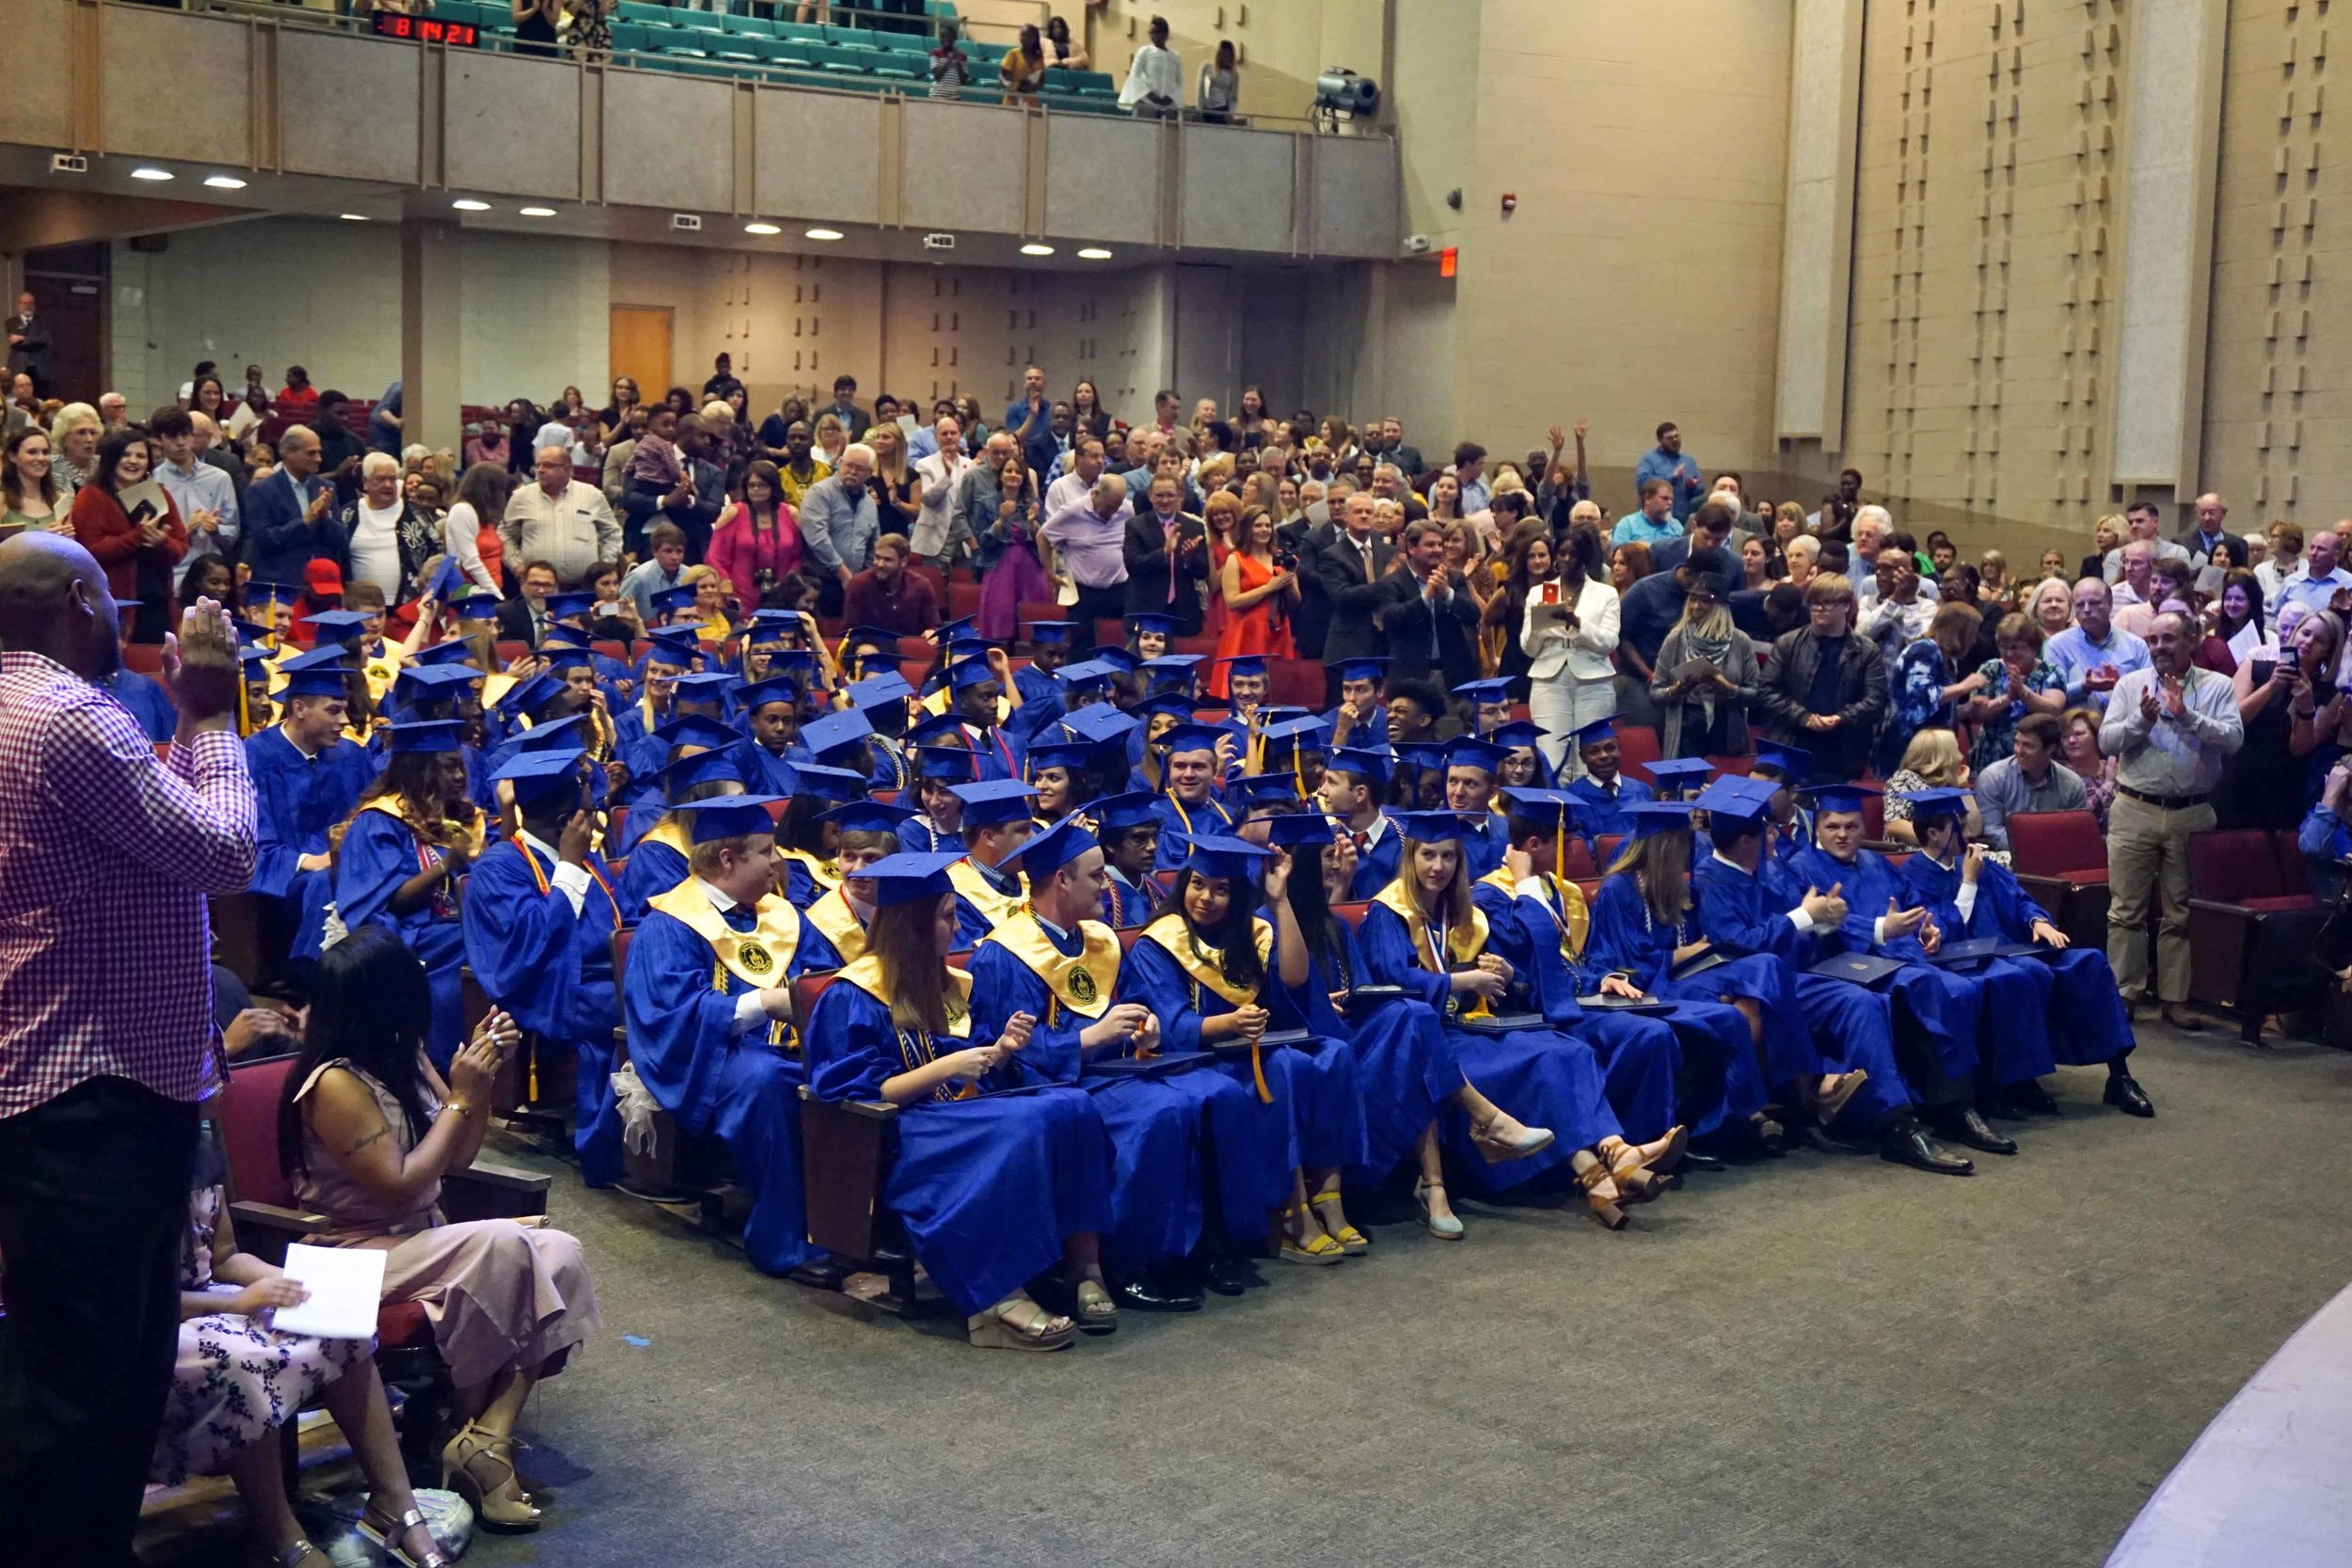 May13 Commencement01.jpg